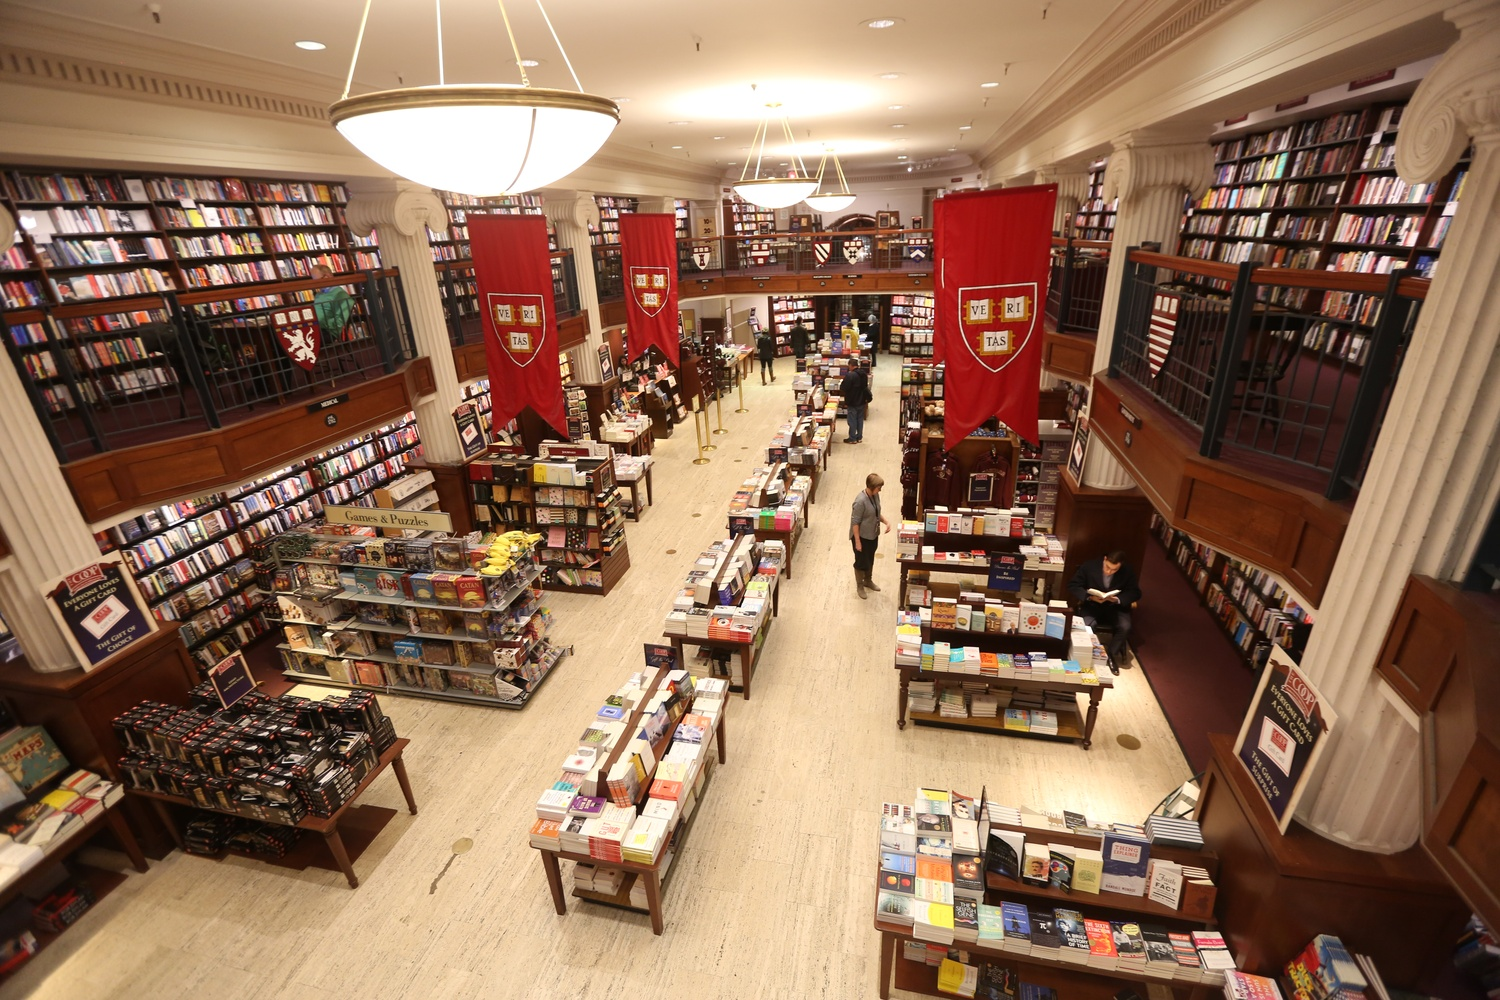 The Harvard Coop's flagship store at 1400 Massachusetts Ave. will be closed for renovations through at least April.